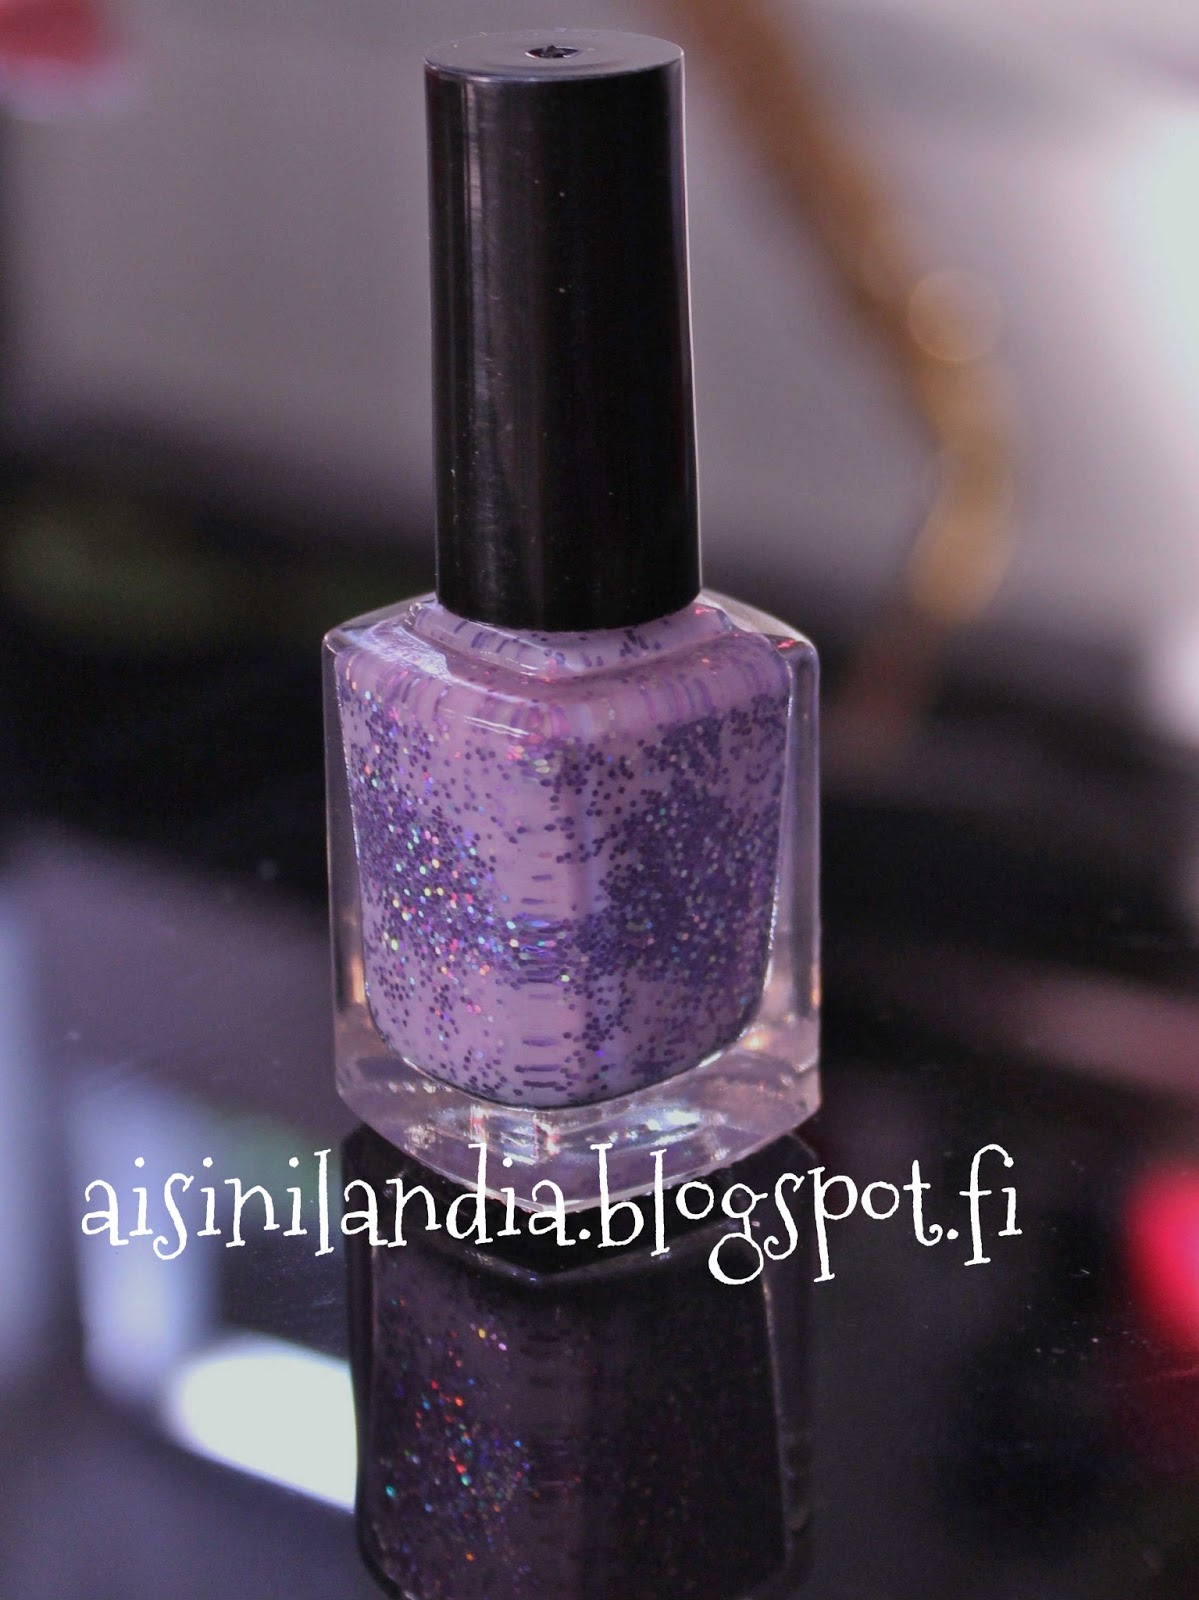 Adventures in Sinilandia: Tutorial: How to make your own nail polish